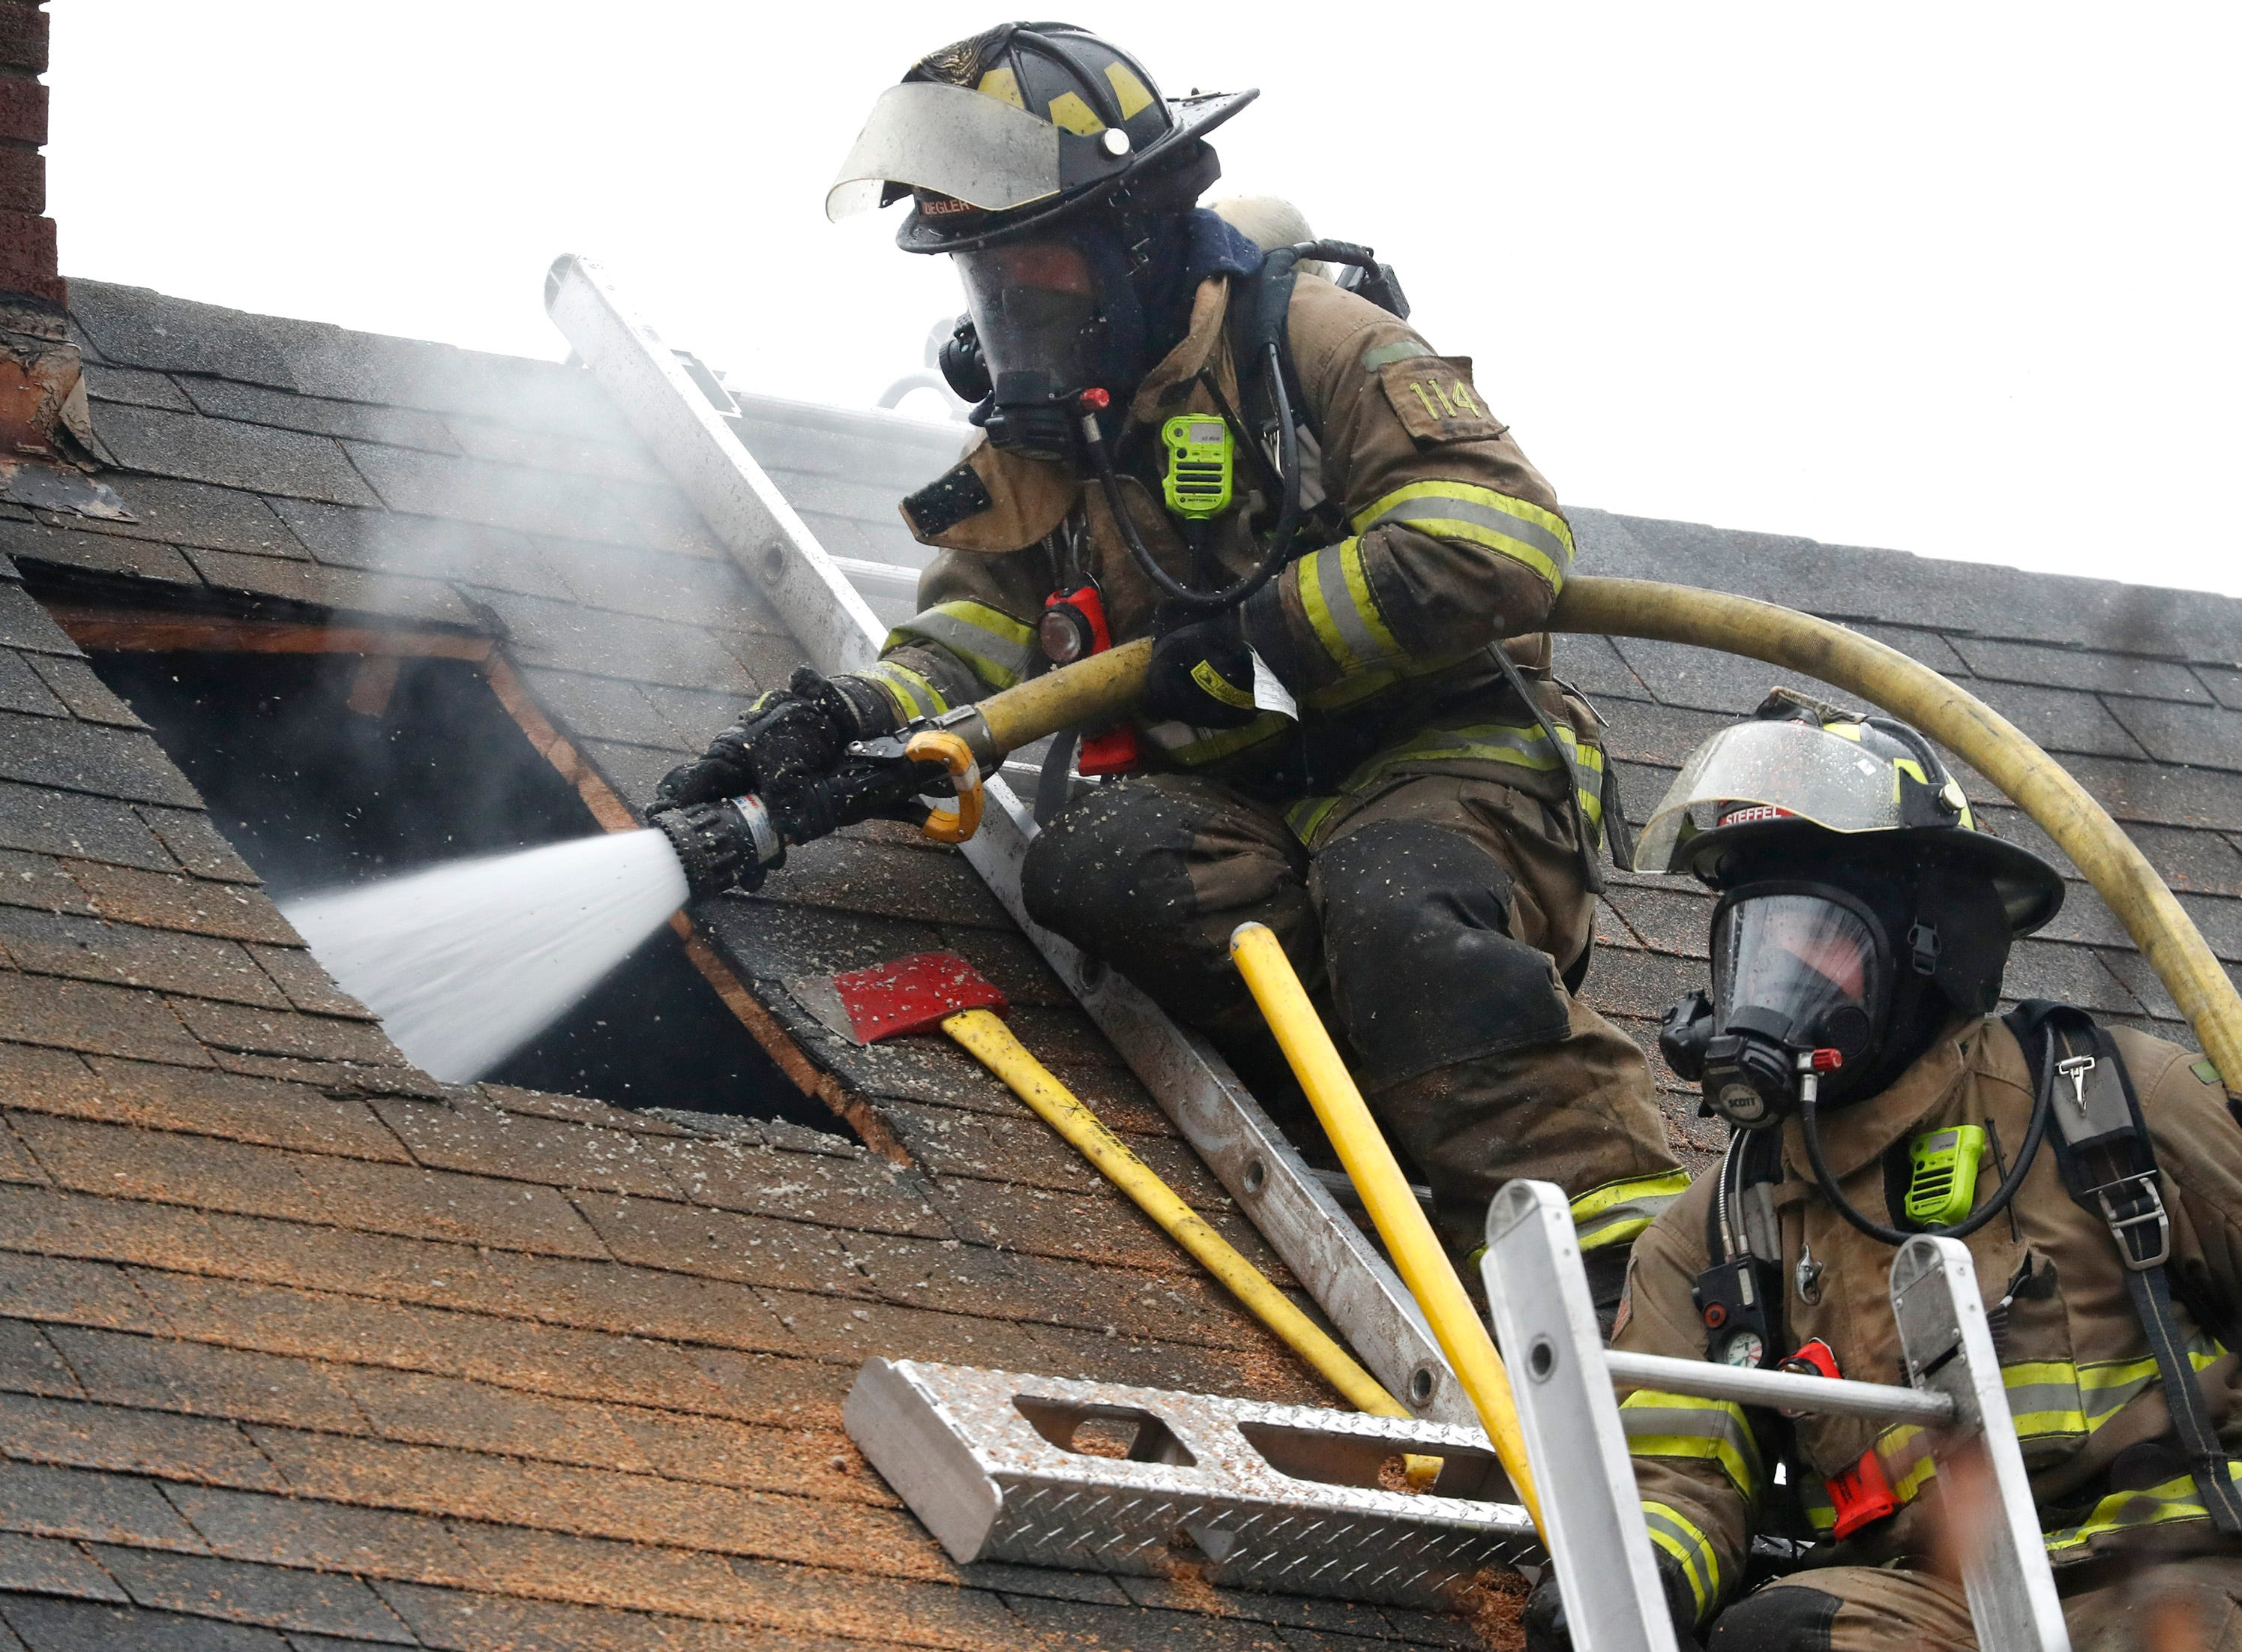 Kaukuana Firefighters spray water through a hole they cut in the roof of a building on West 10th Street Thursday, Dec. 27, 2018, Kaukauna, Wis.